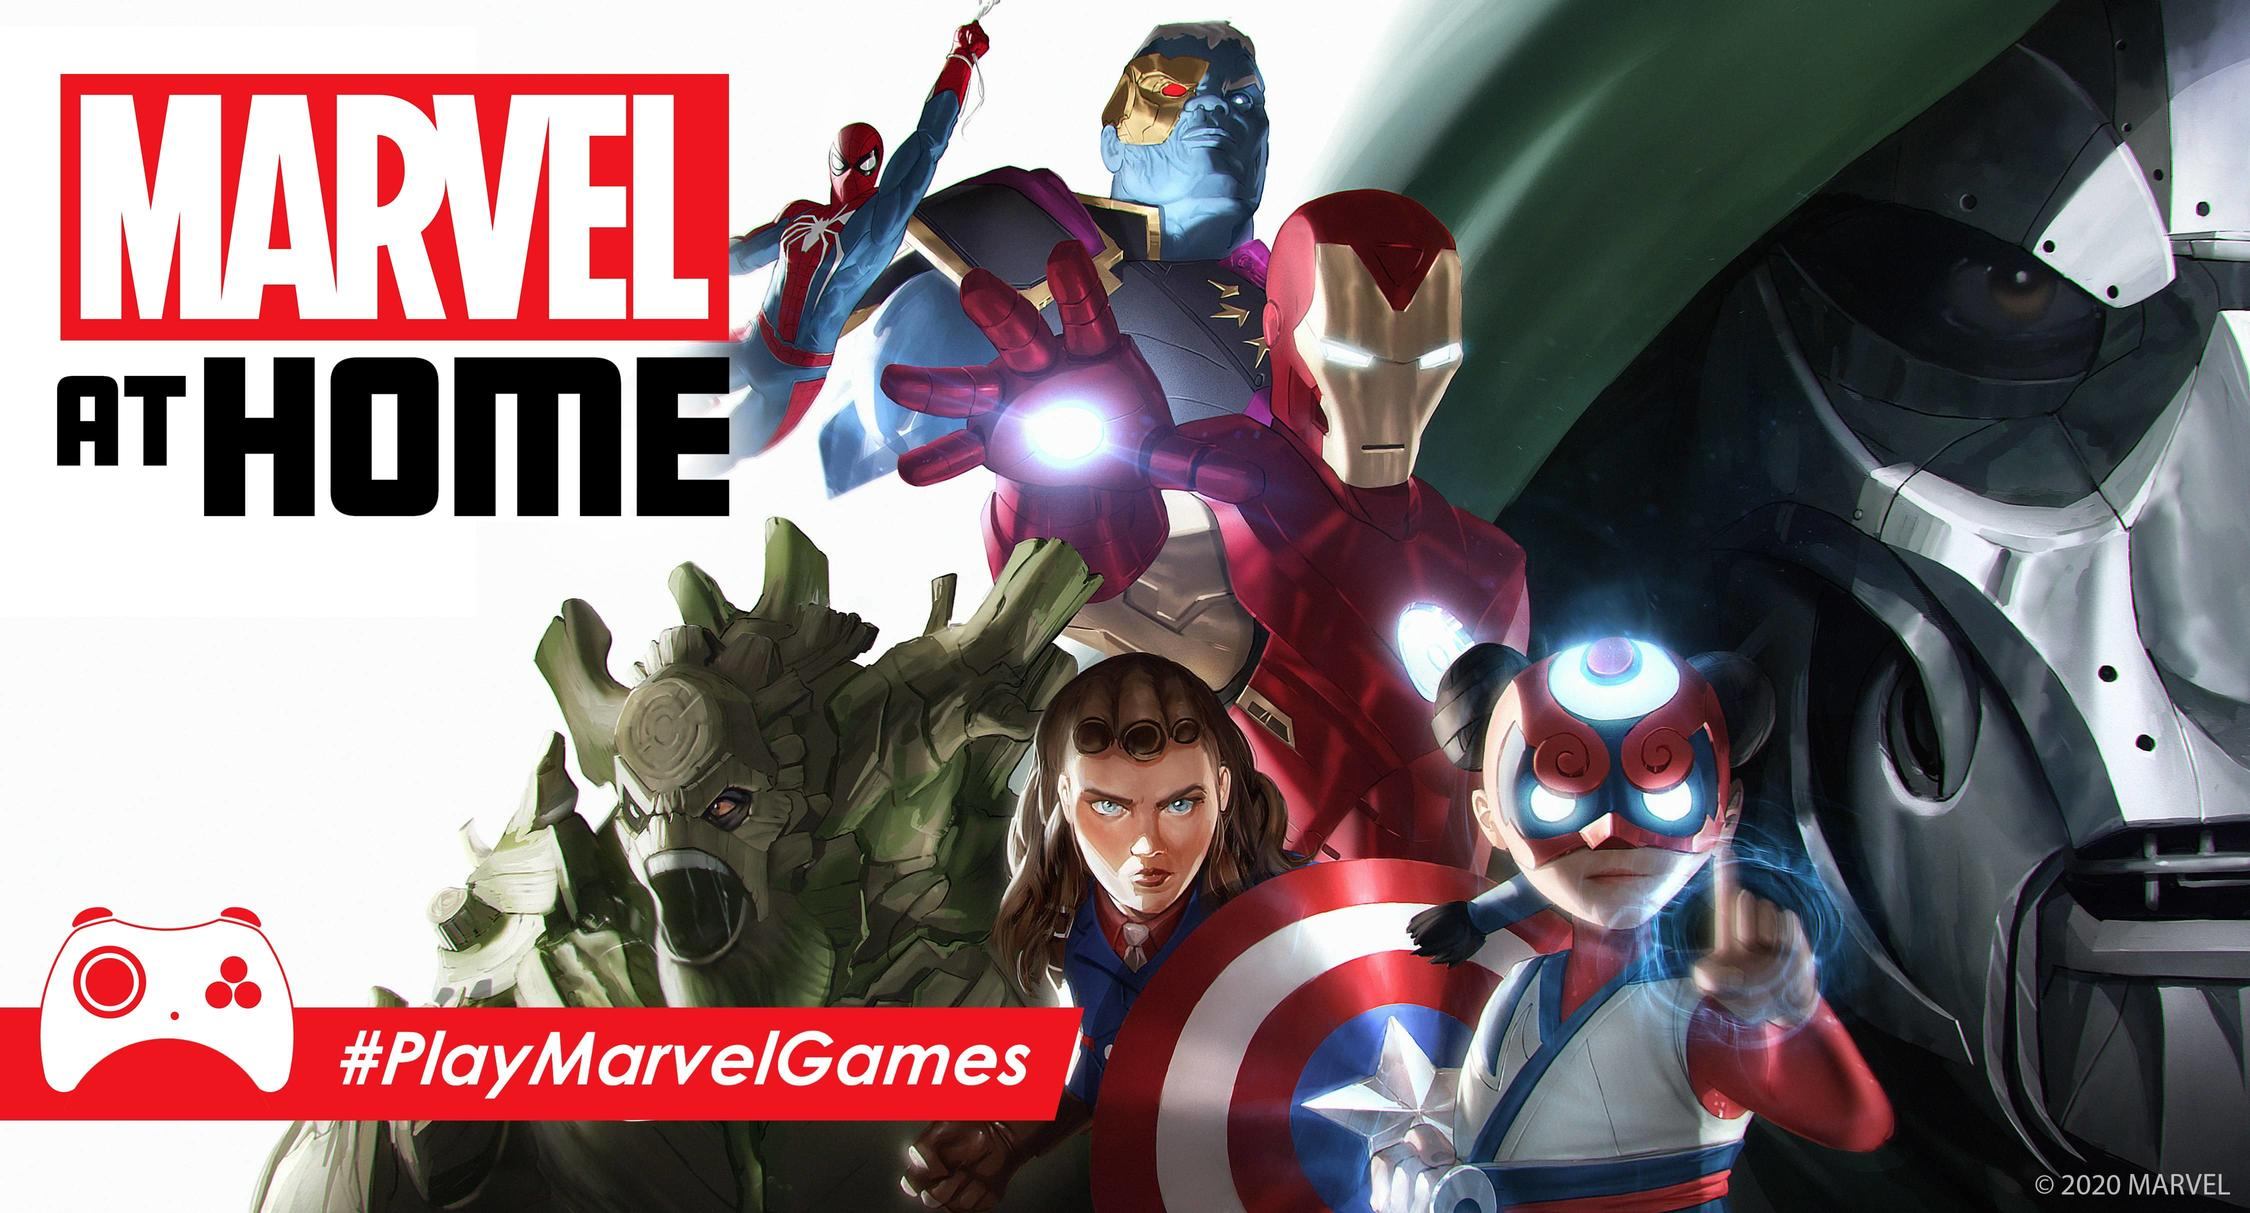 Marvel Games